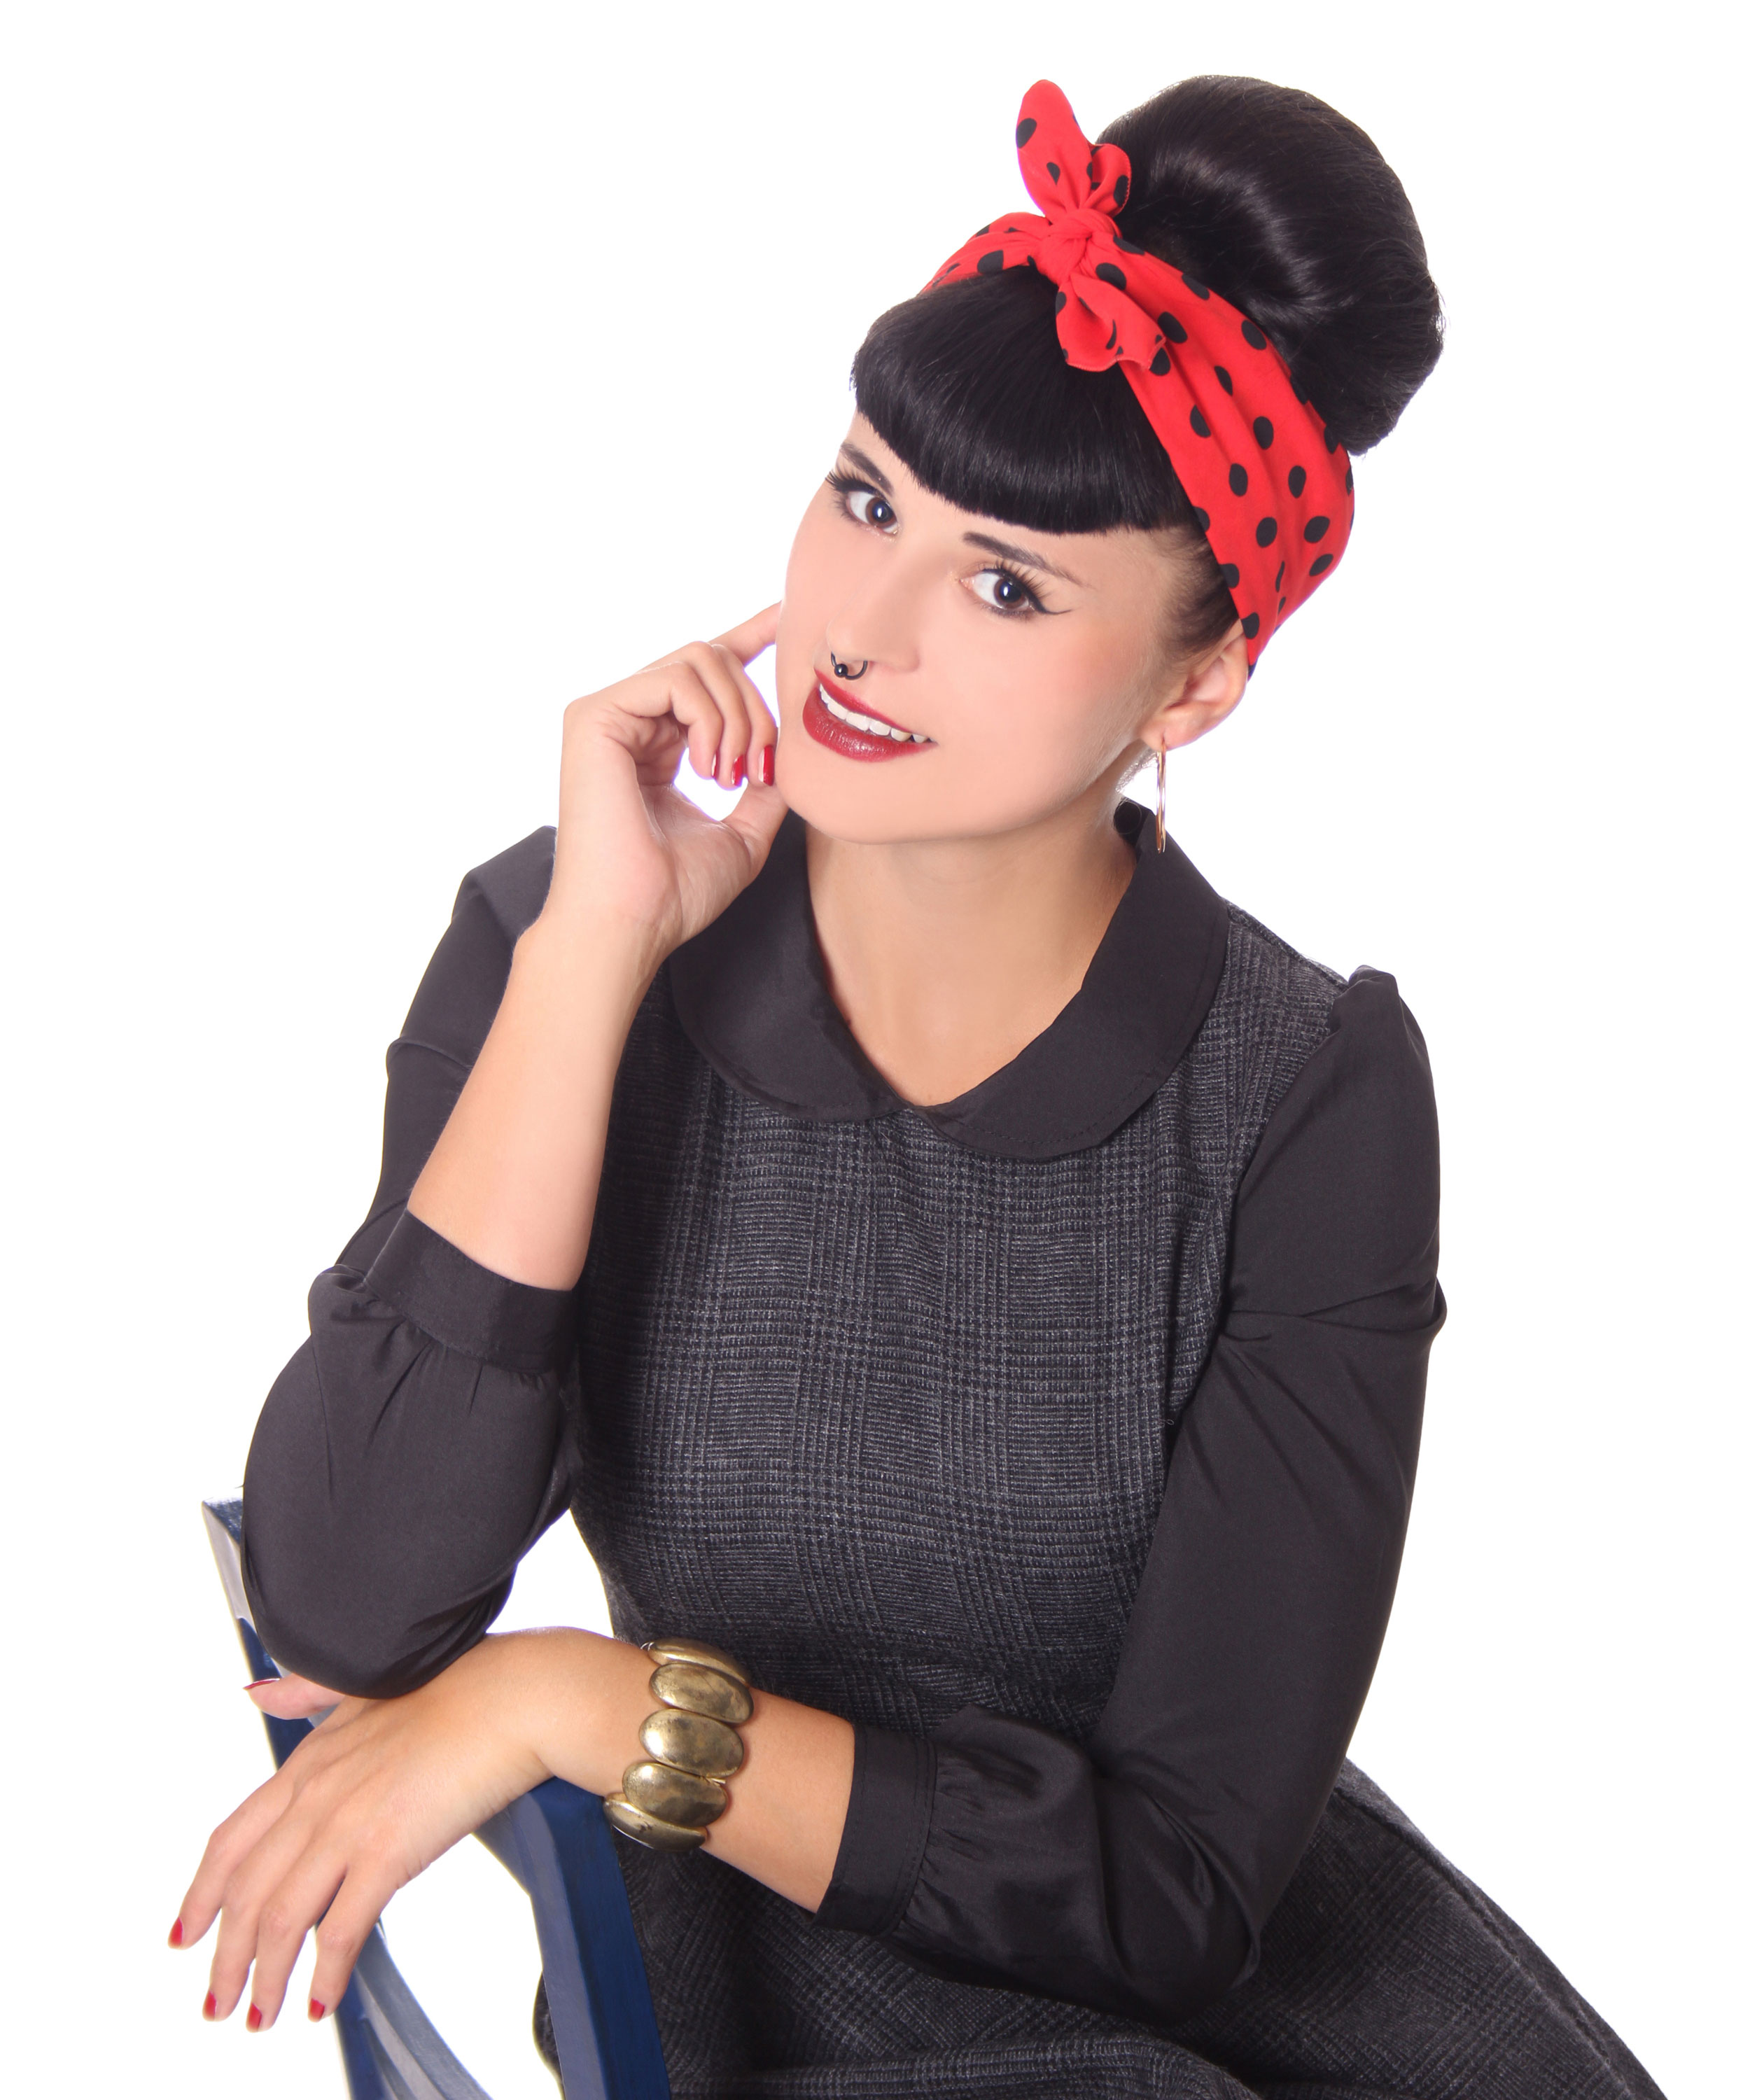 50s frisuren polka dots retro nickituch hairband haar tuch bandana v sugarshock accessoires. Black Bedroom Furniture Sets. Home Design Ideas